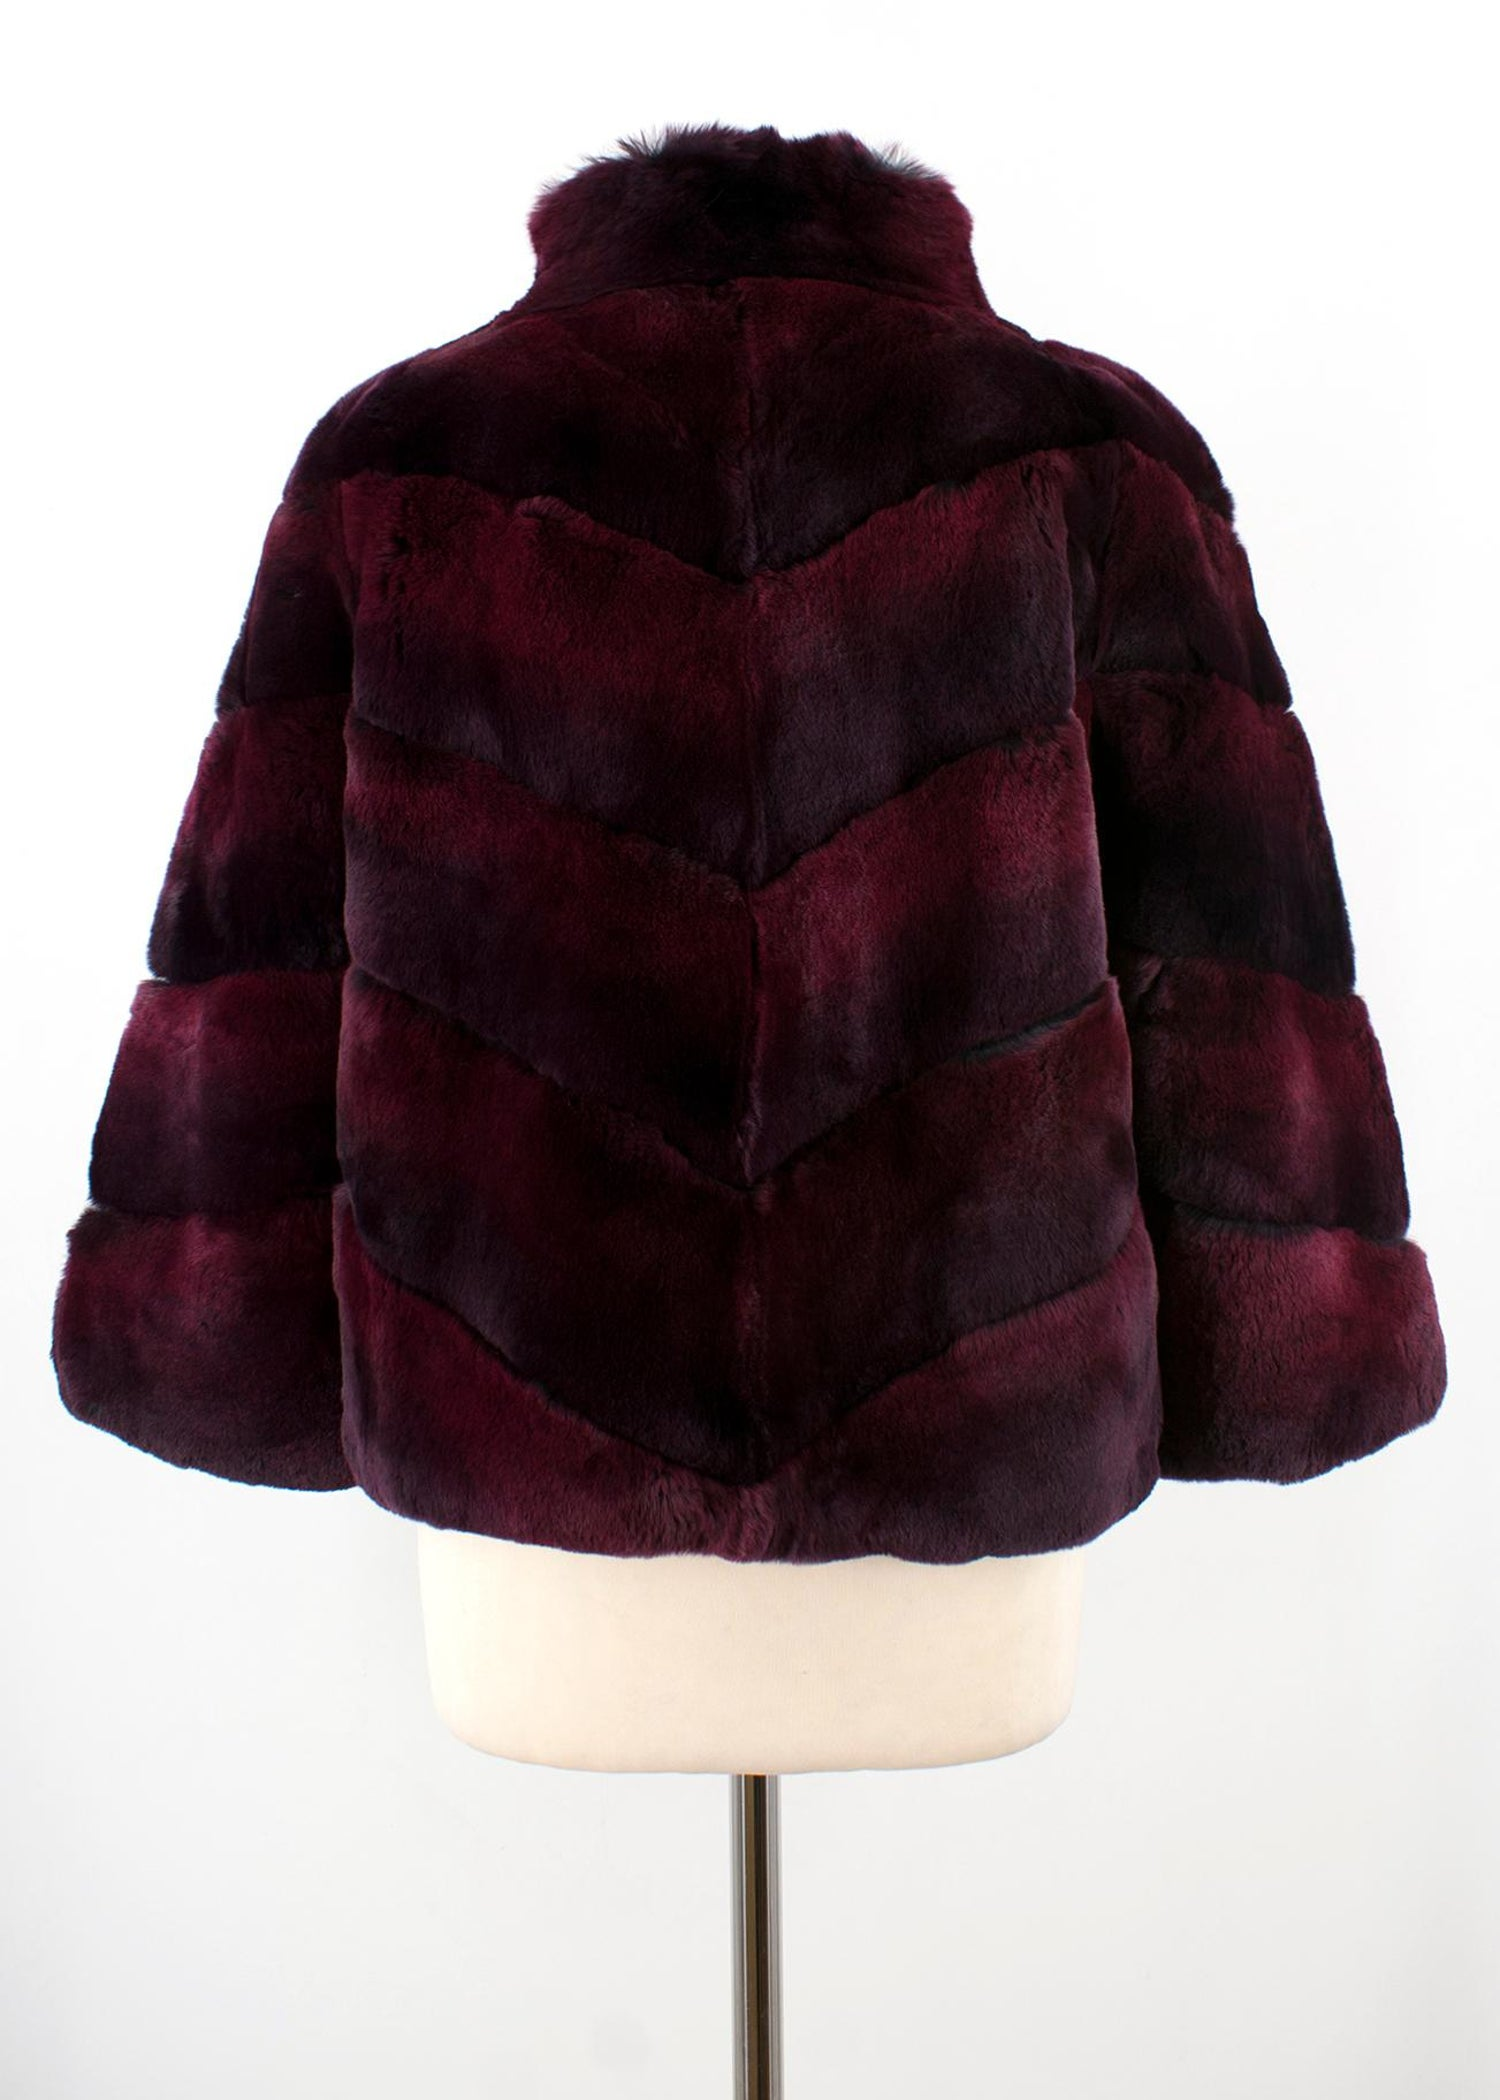 26948f749422 Diane von Furstenberg Purple Rabbit Fur Coat For Sale at 1stdibs